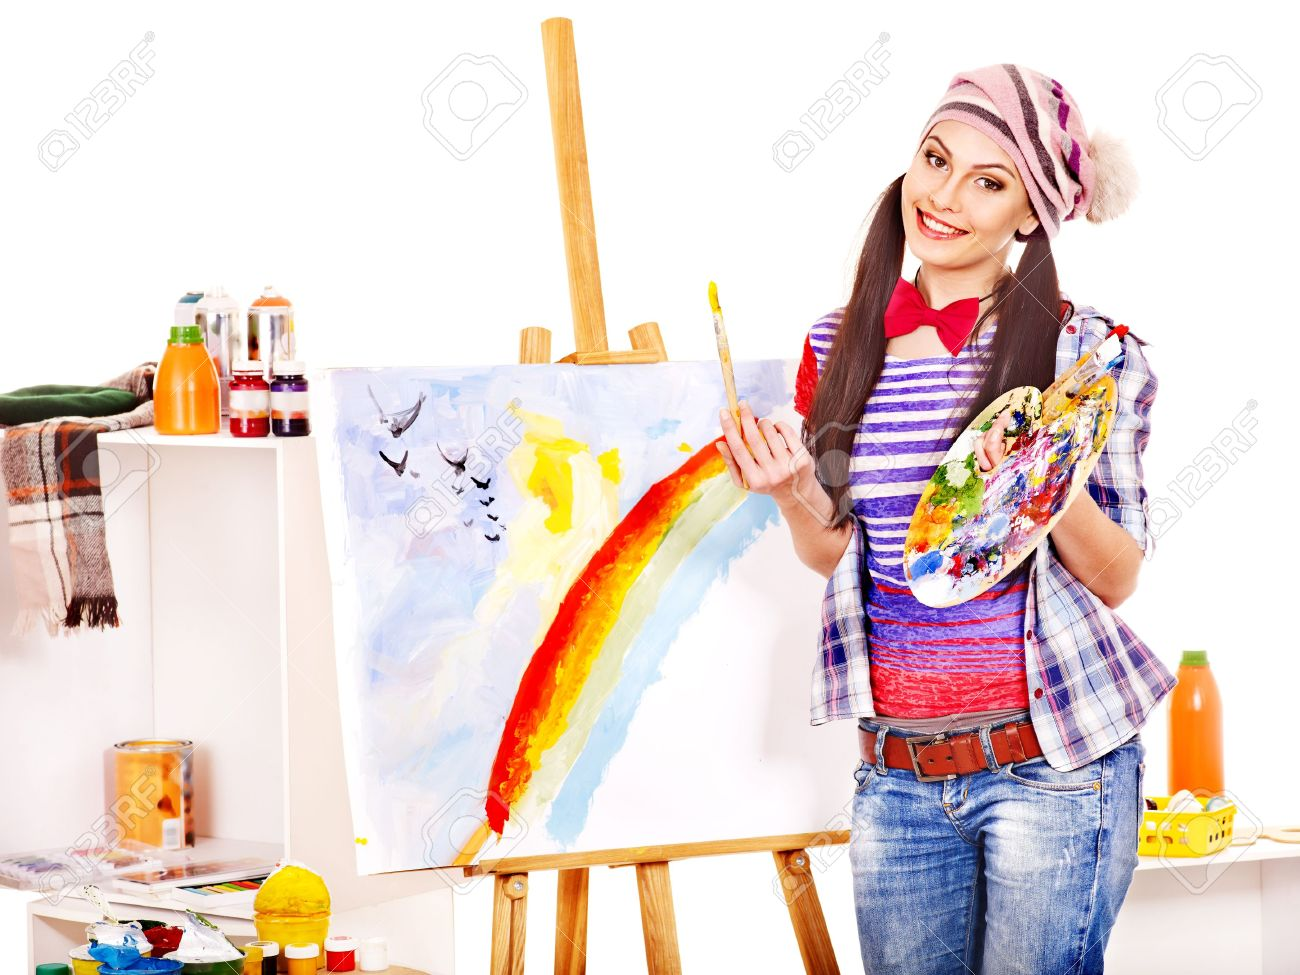 17532327-Artist-woman-at-work-Isolated--